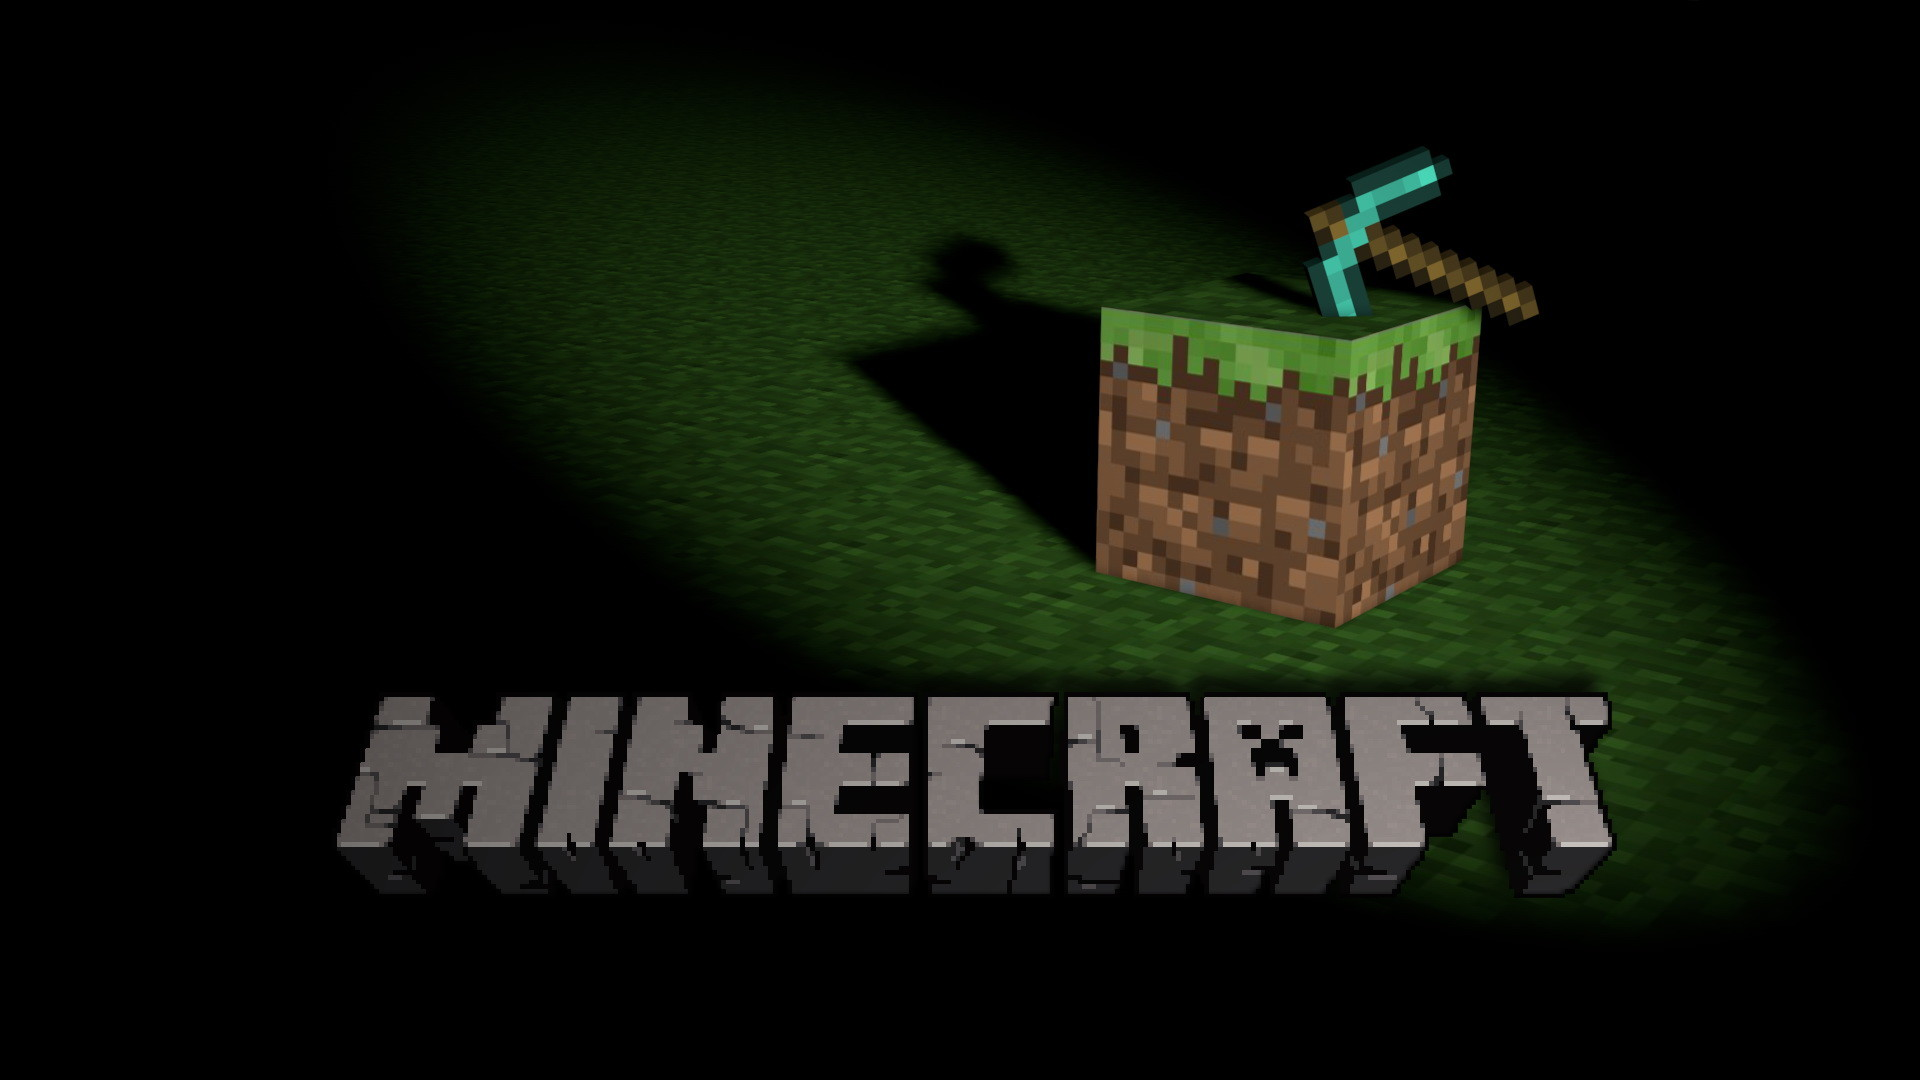 Minecraft Mobs Wallpapers Picture with High Definition Wallpaper Resolution  px 199.41 KB Games Steve Enderdragon